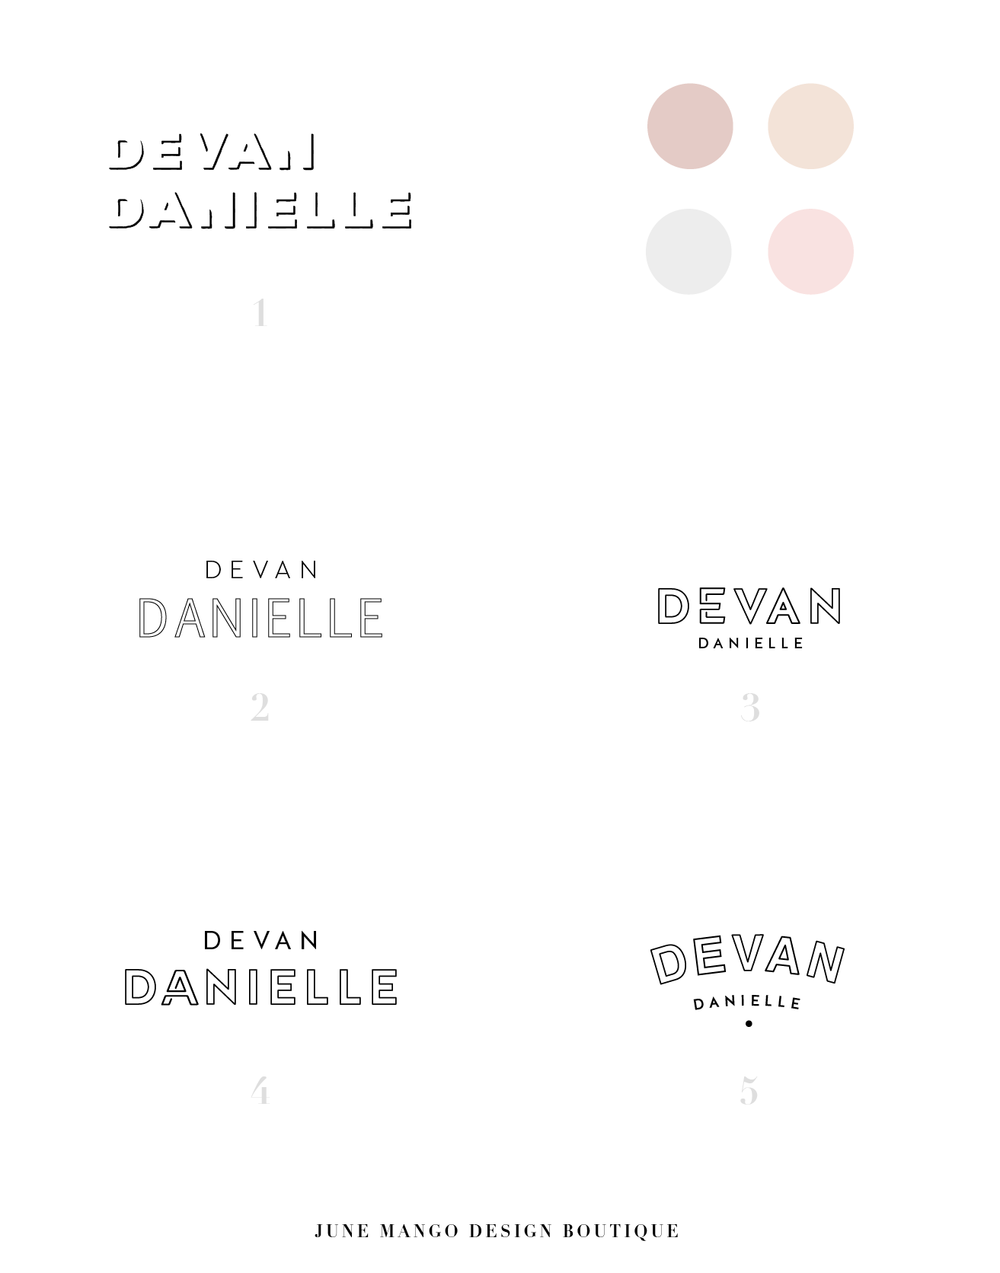 Devan-Danielle-Logo-Process-June-Mango-Design-Boutique-01.png